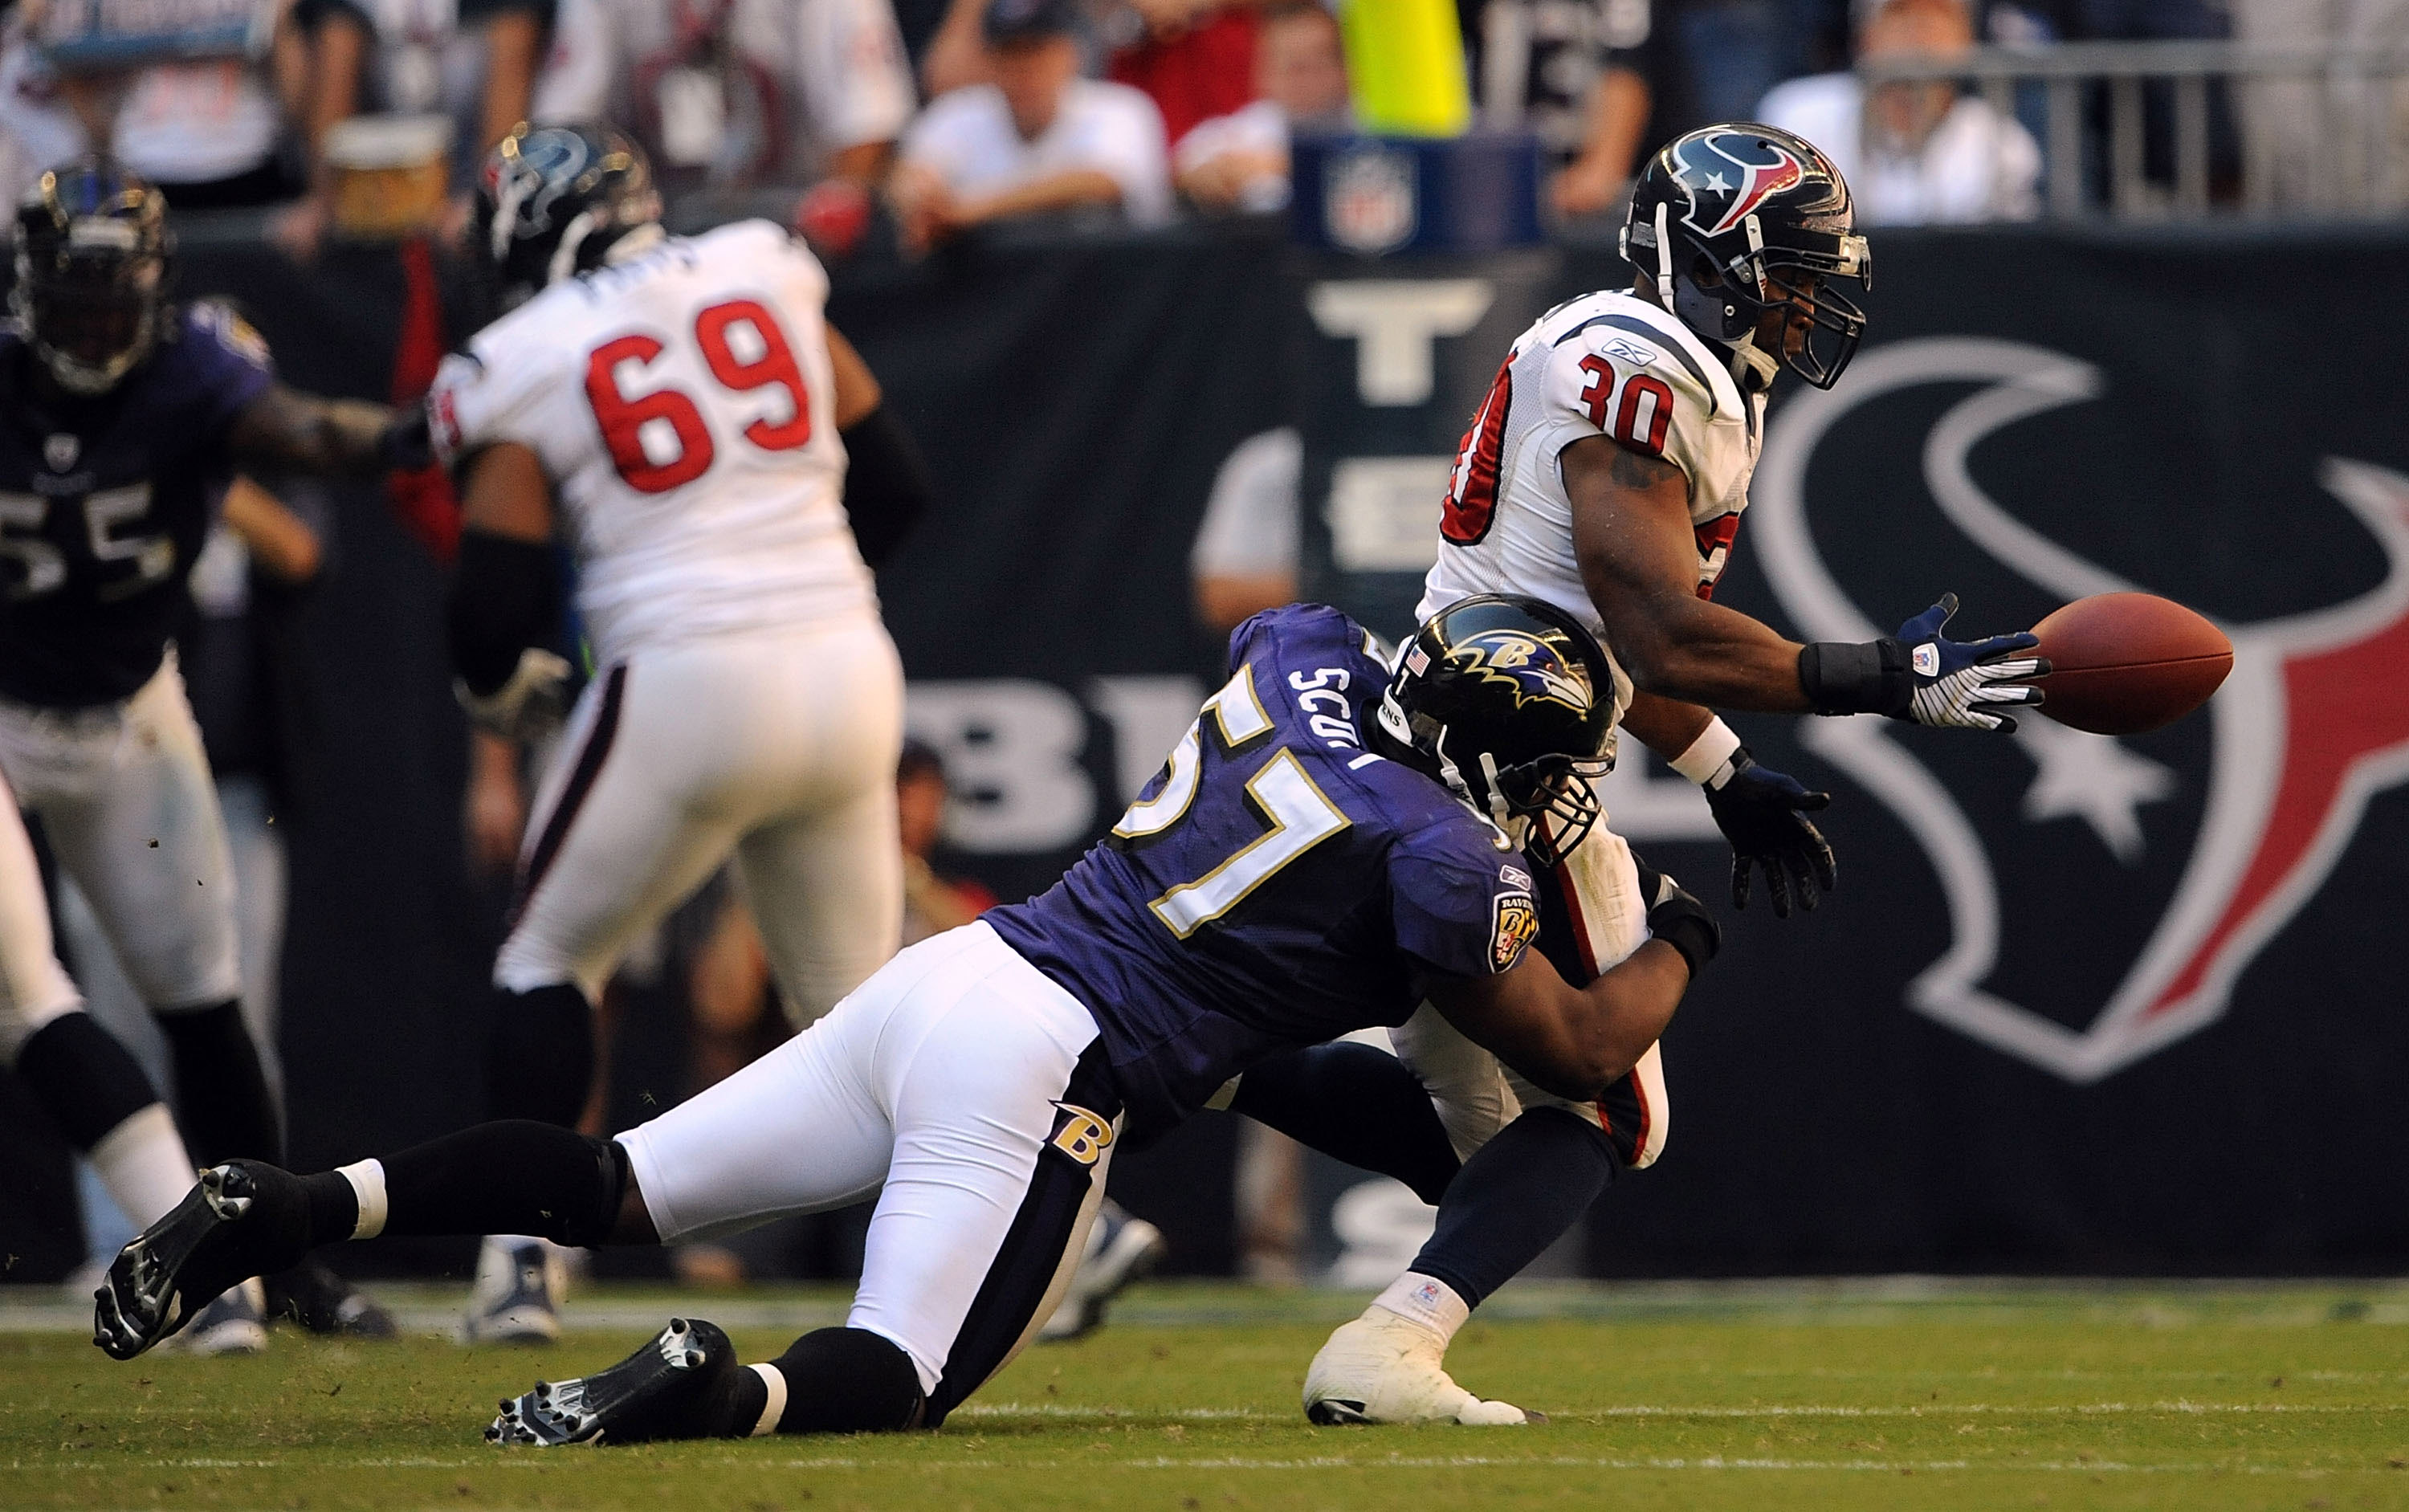 HOUSTON - NOVEMBER 09:  Running back Ahman Green #30 of the Houston Texans drops a pass while tackled by Bart Scott #57 of the Baltimore Ravens at Reliant Stadium on November 9, 2008 in Houston, Texas.  (Photo by Ronald Martinez/Getty Images)